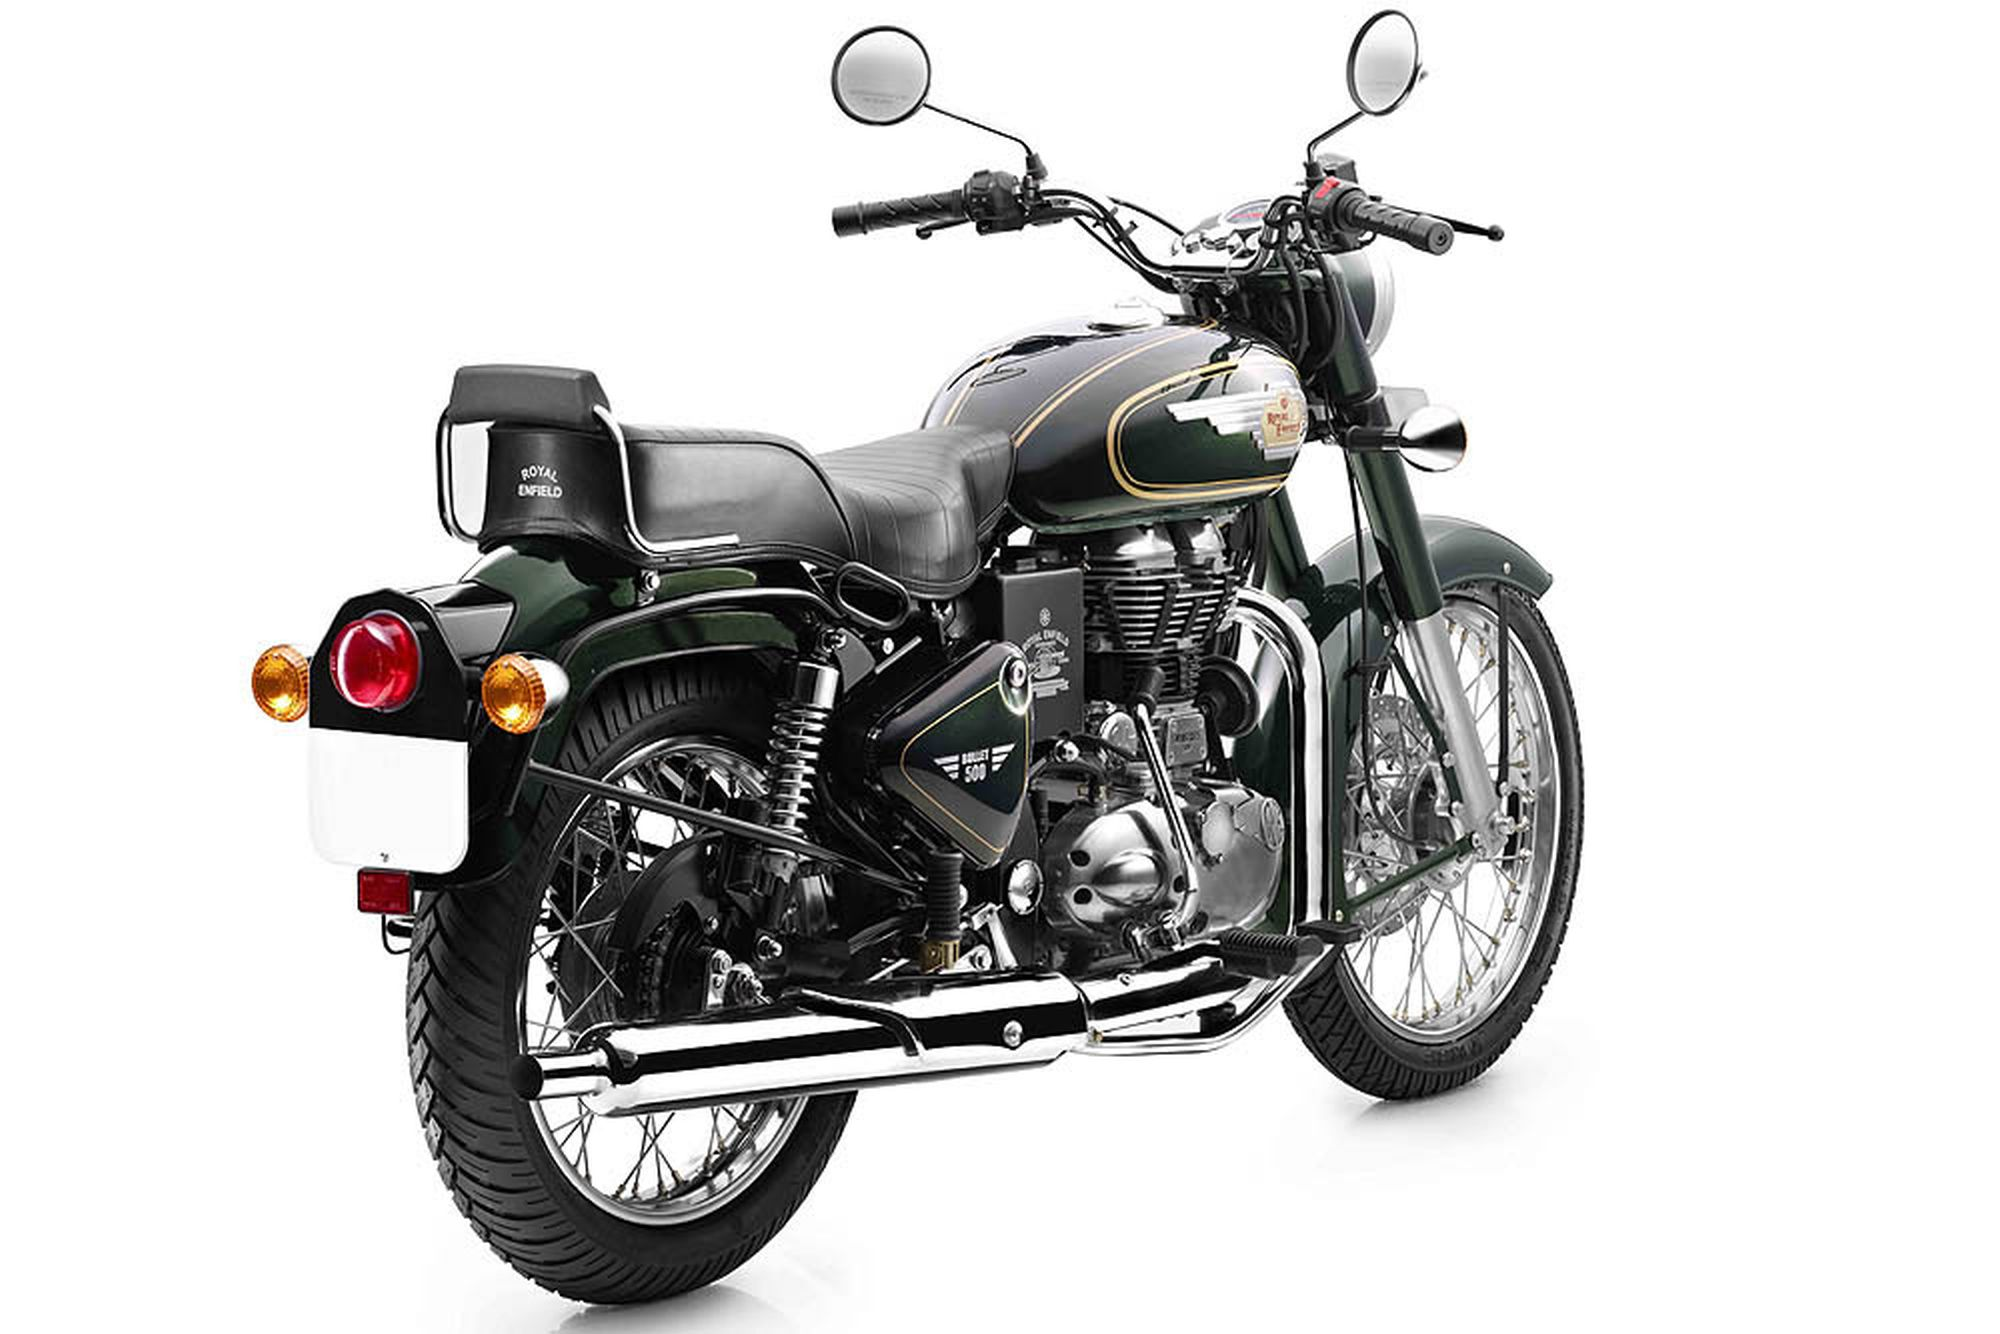 Royal Enfield Bullet 500 Army 1998 images #123448